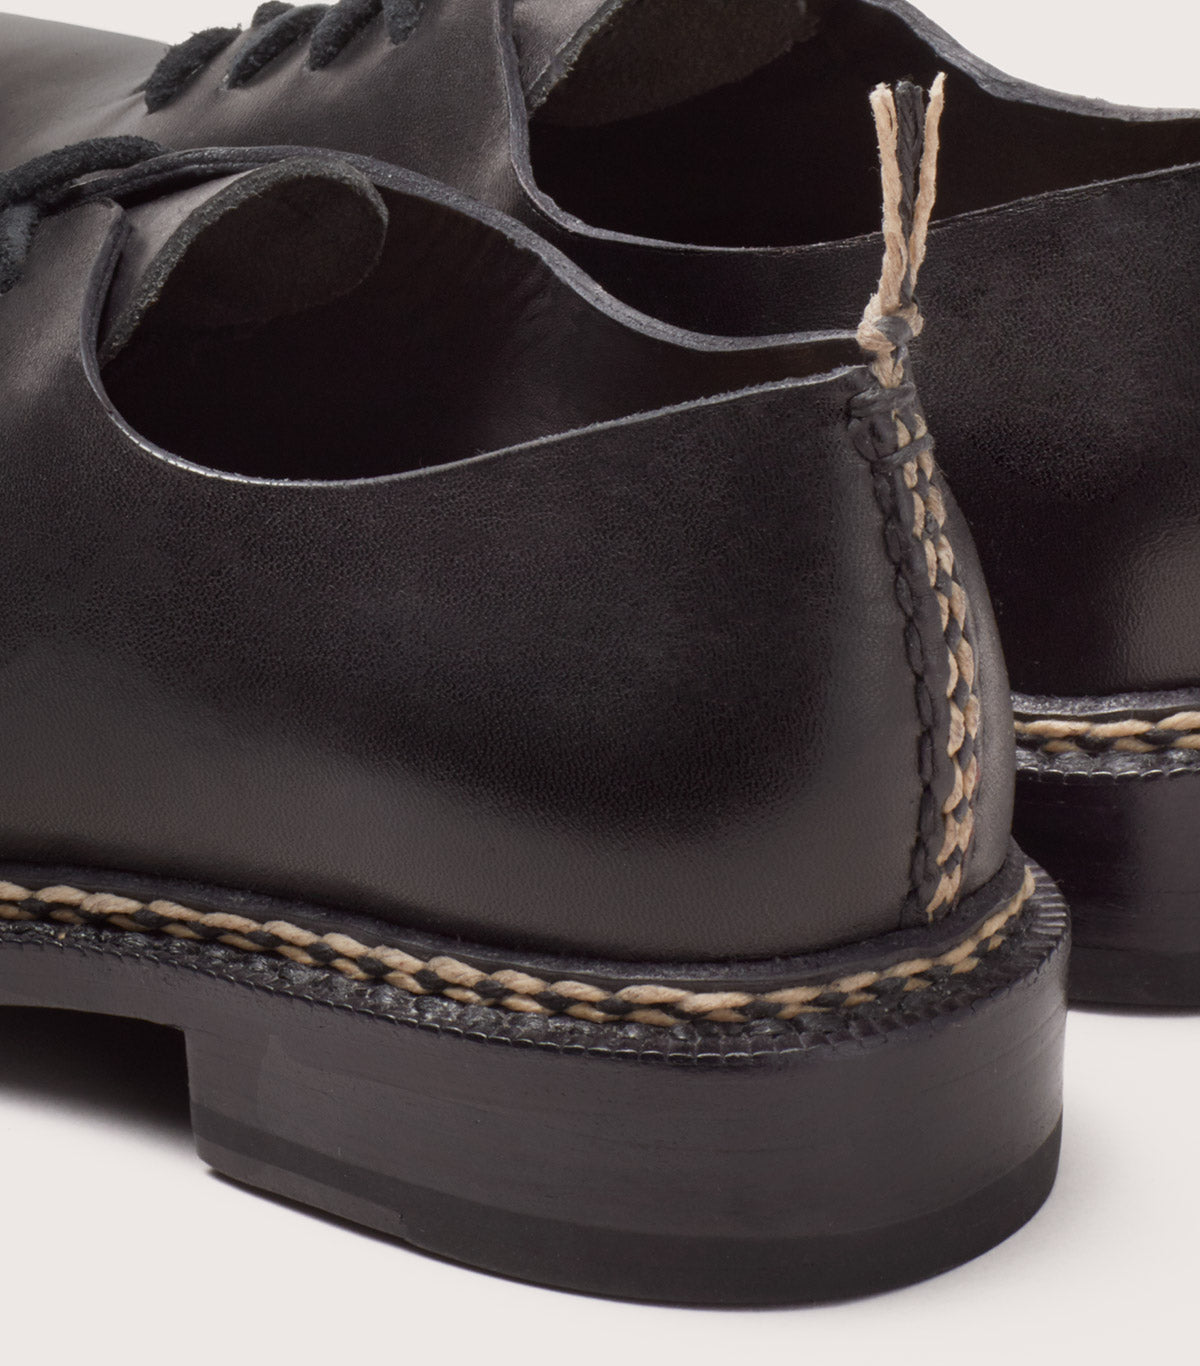 BRAIDED OXFORD - WFBOXL_BLK